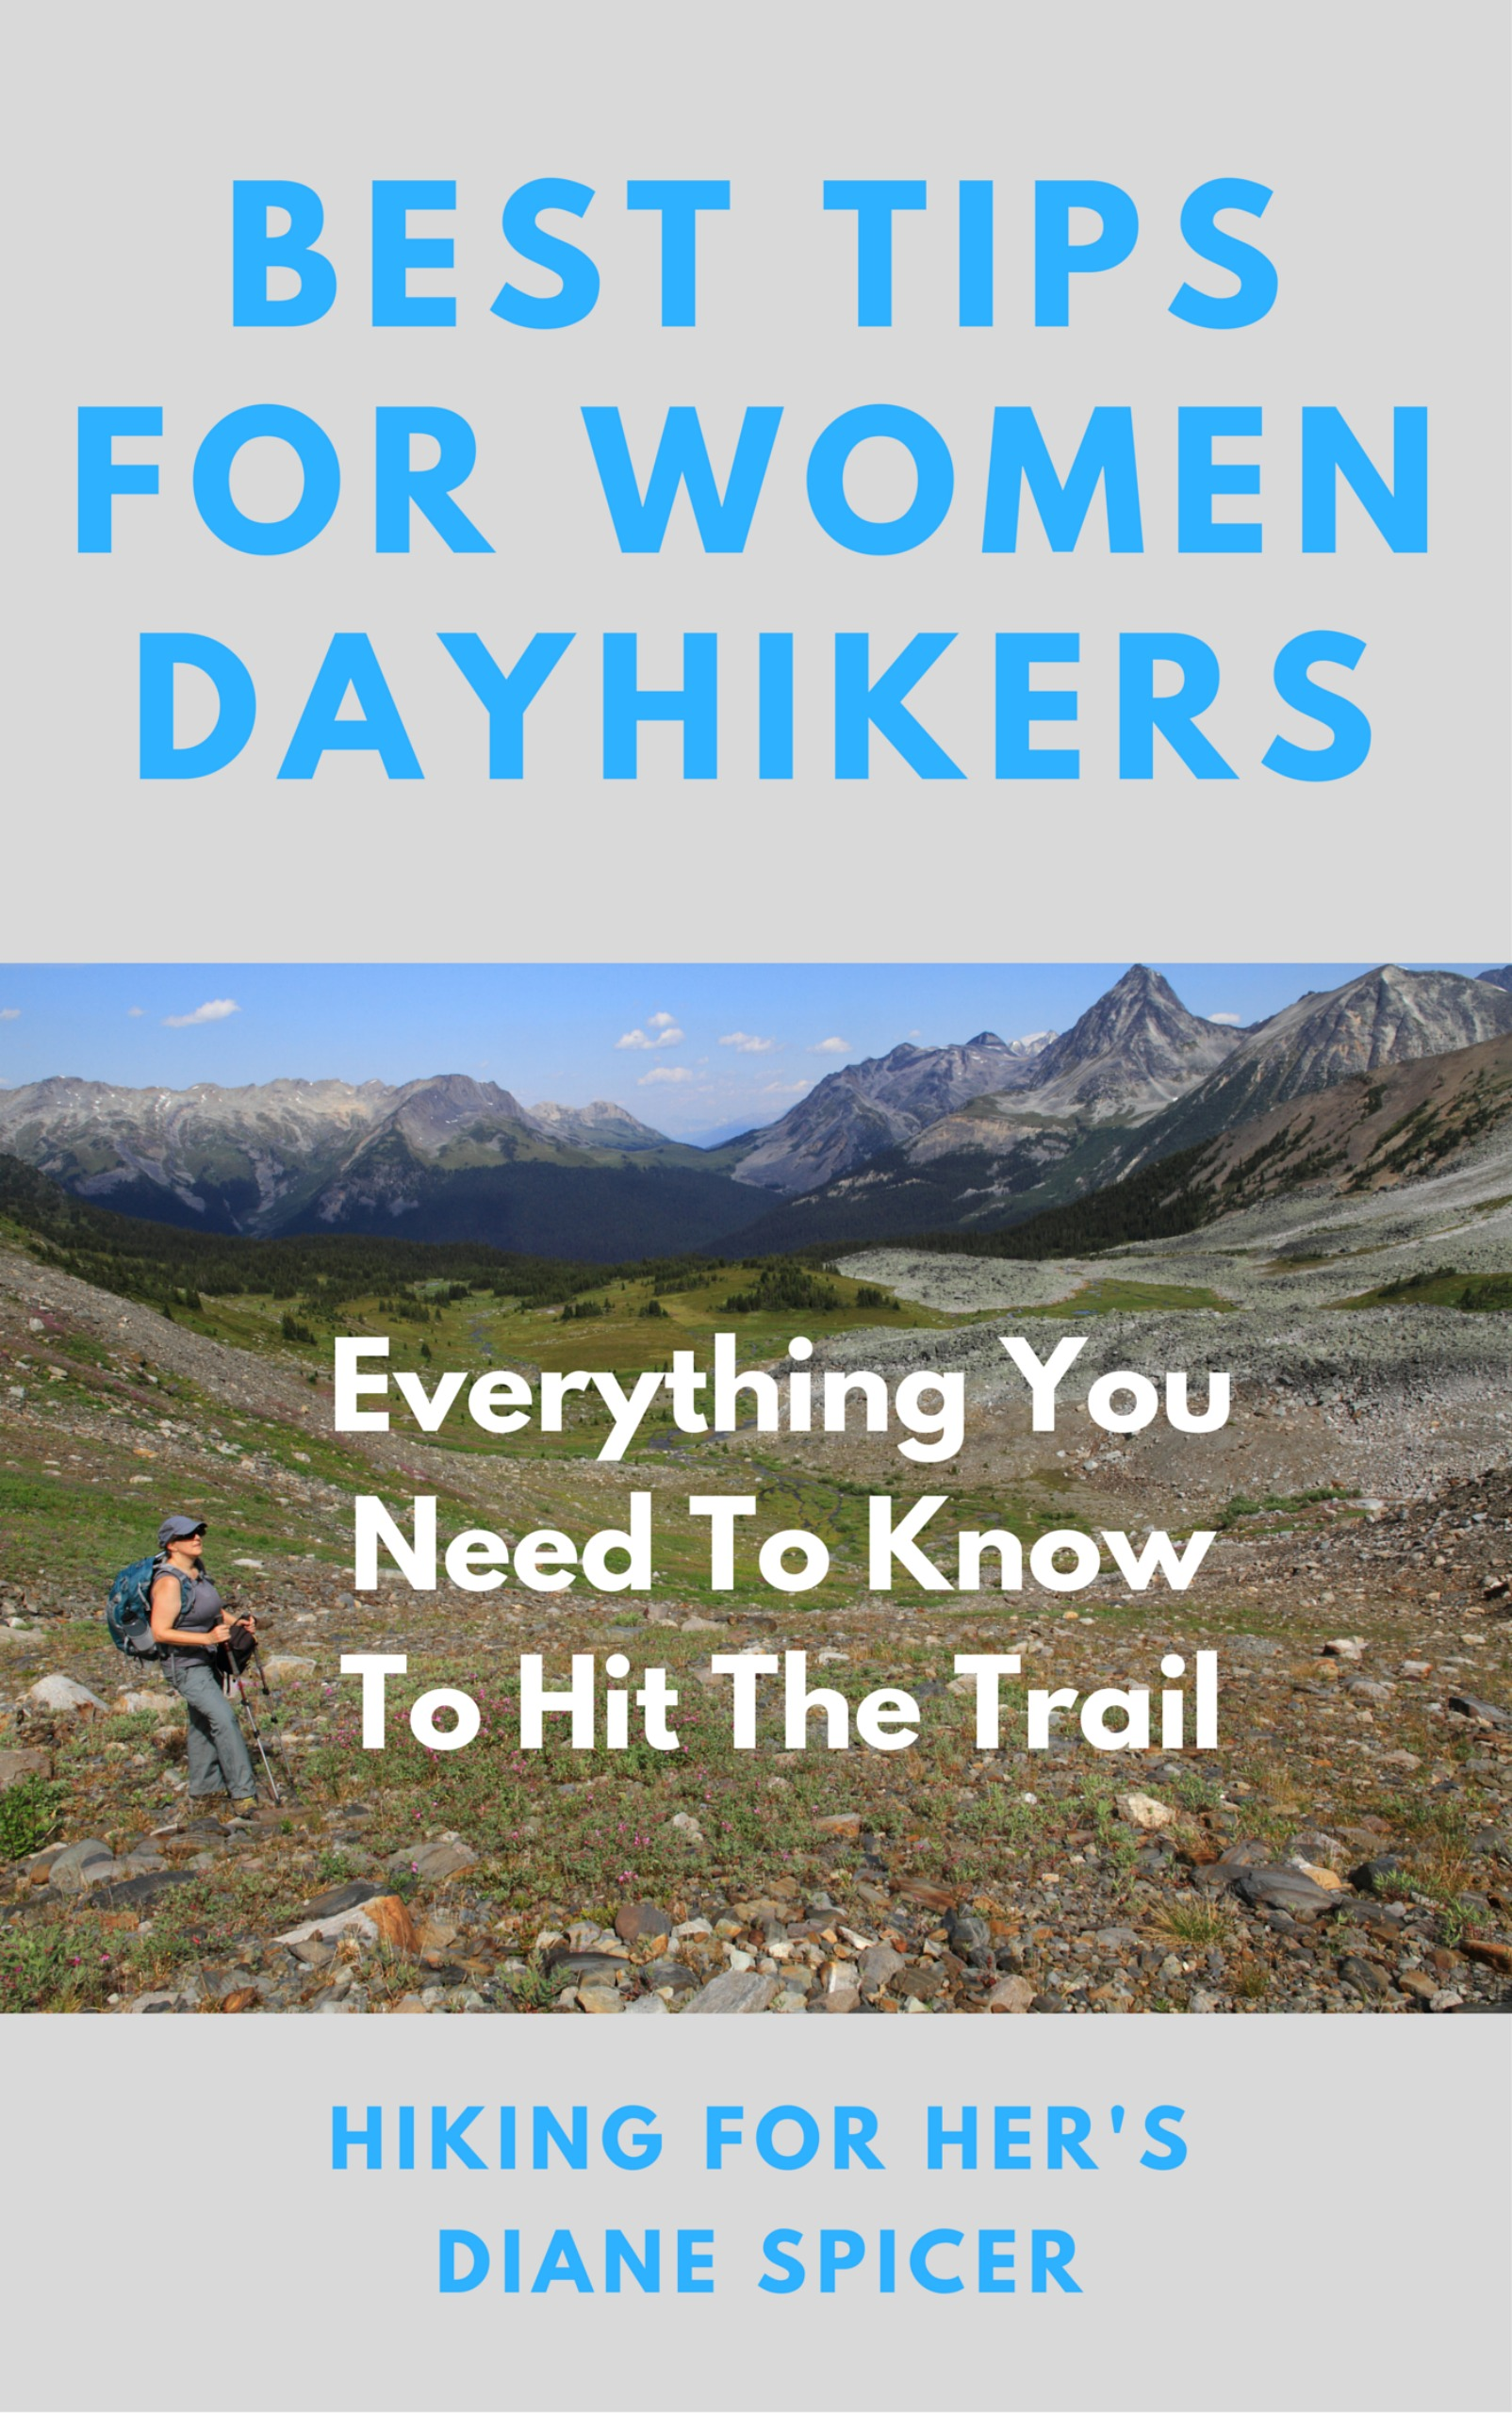 Cover of Hiking For Her's book Best Tips For Women Day Hikers: Everything You Need To Know To Hit The Trail